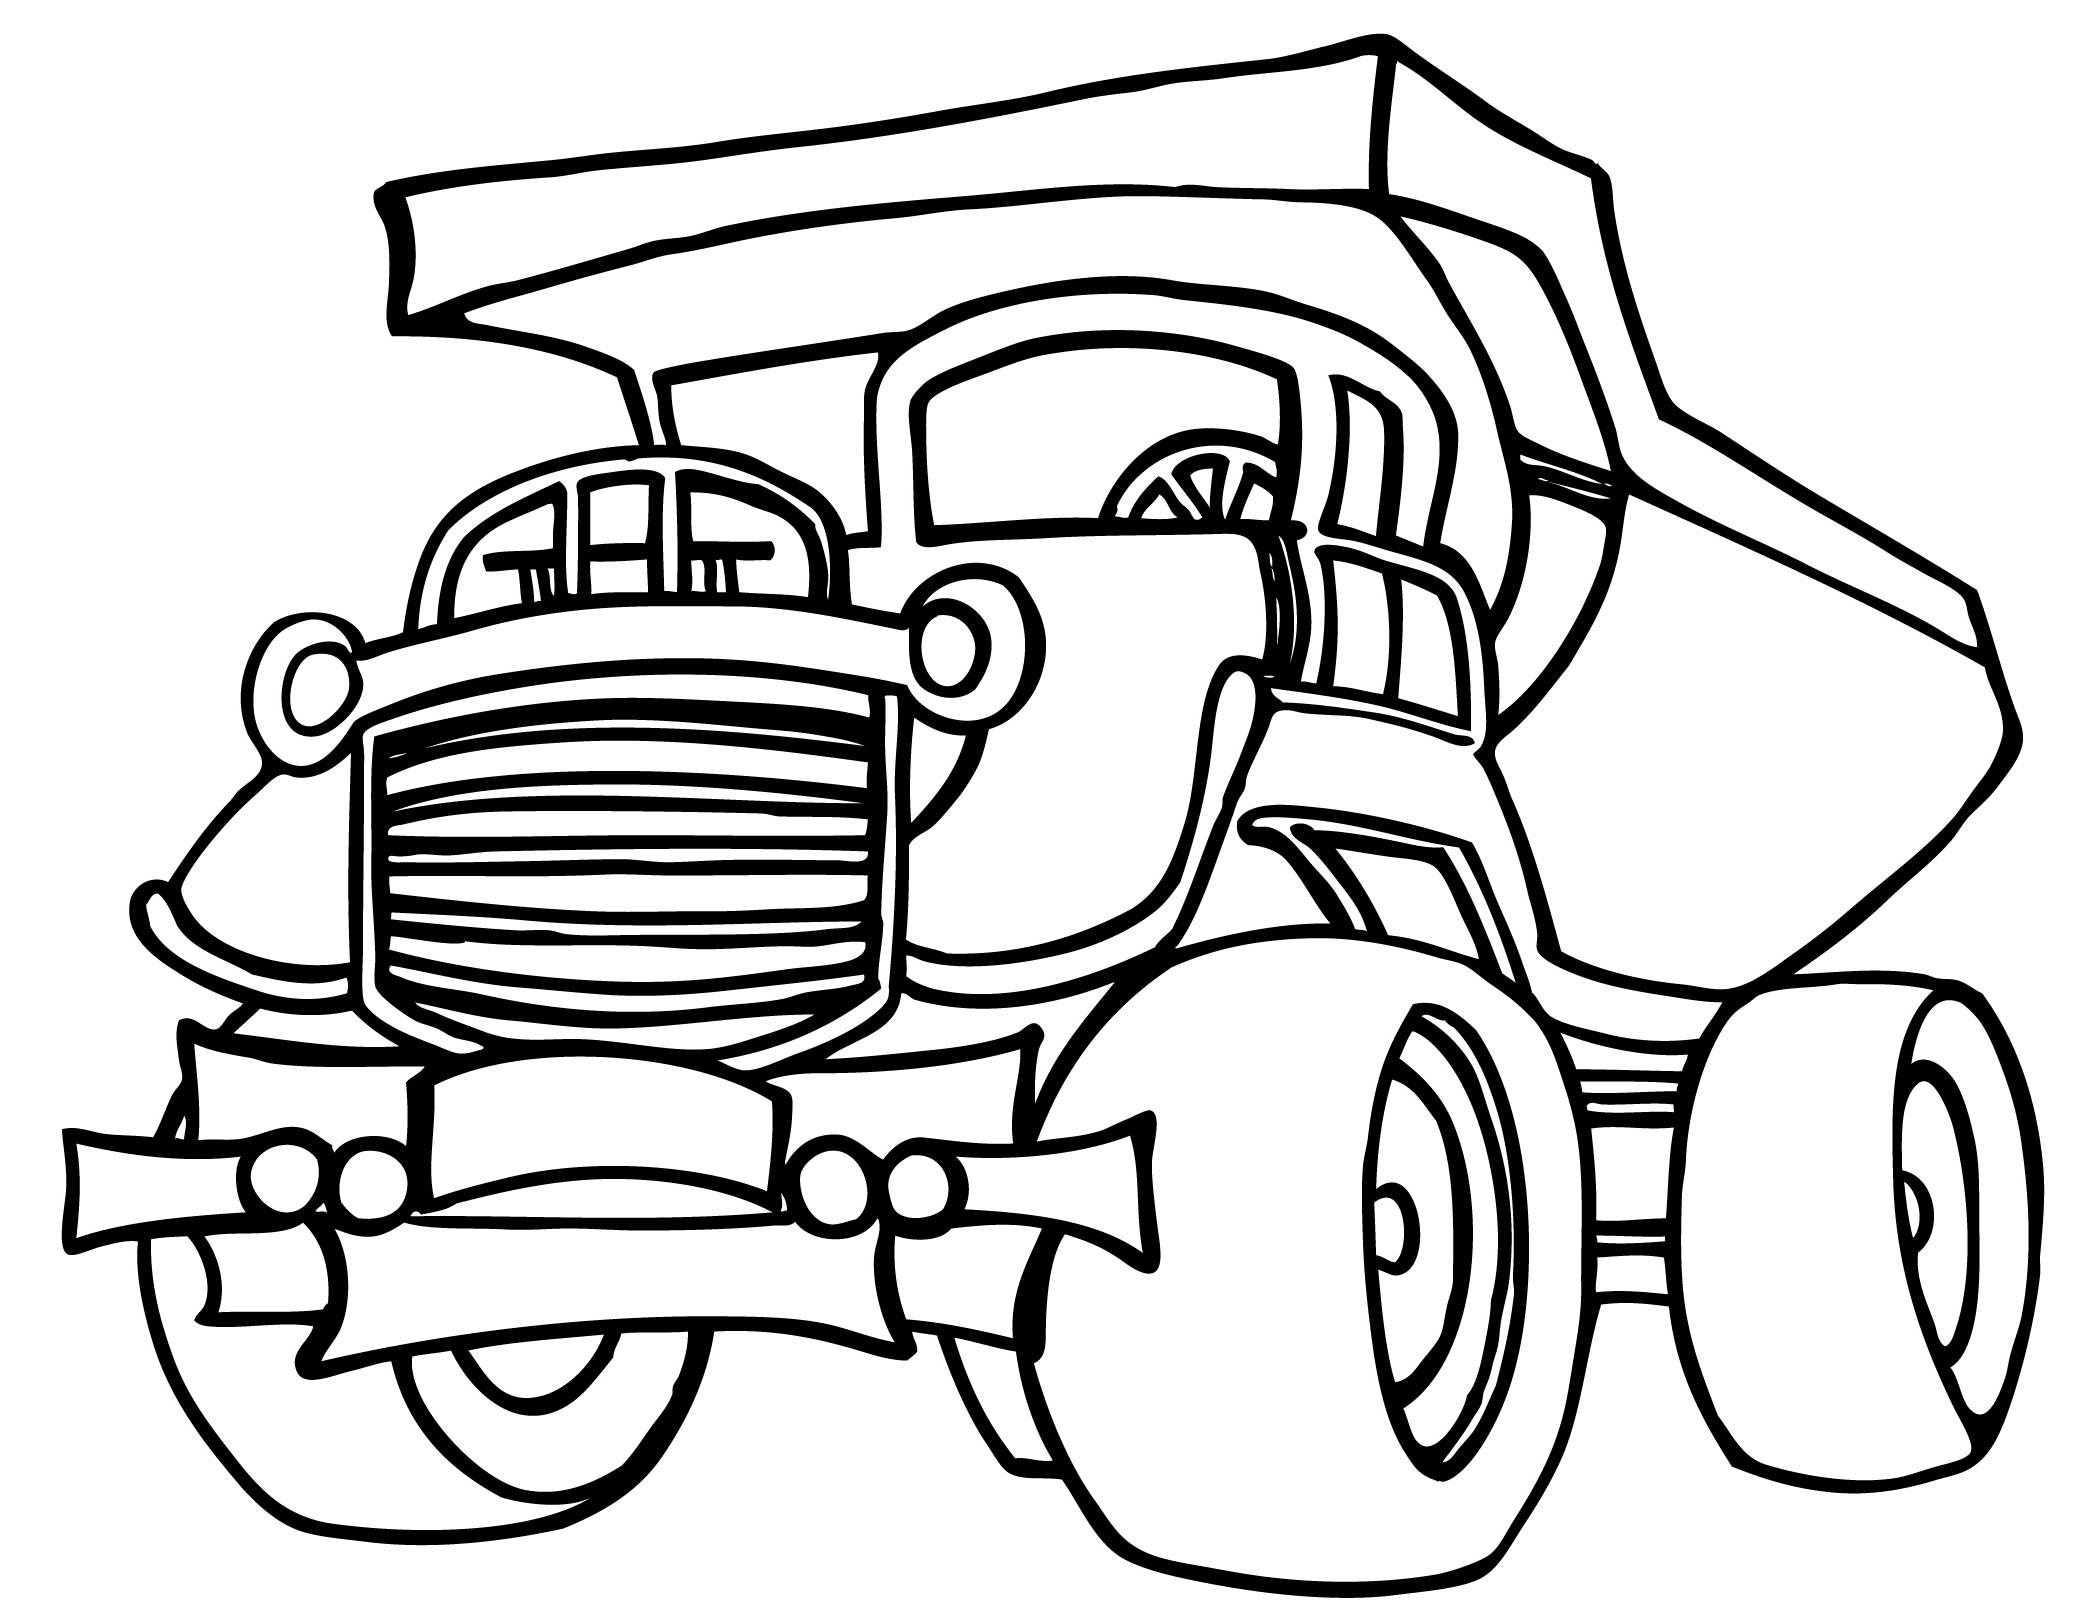 Coloring pages for kids truck